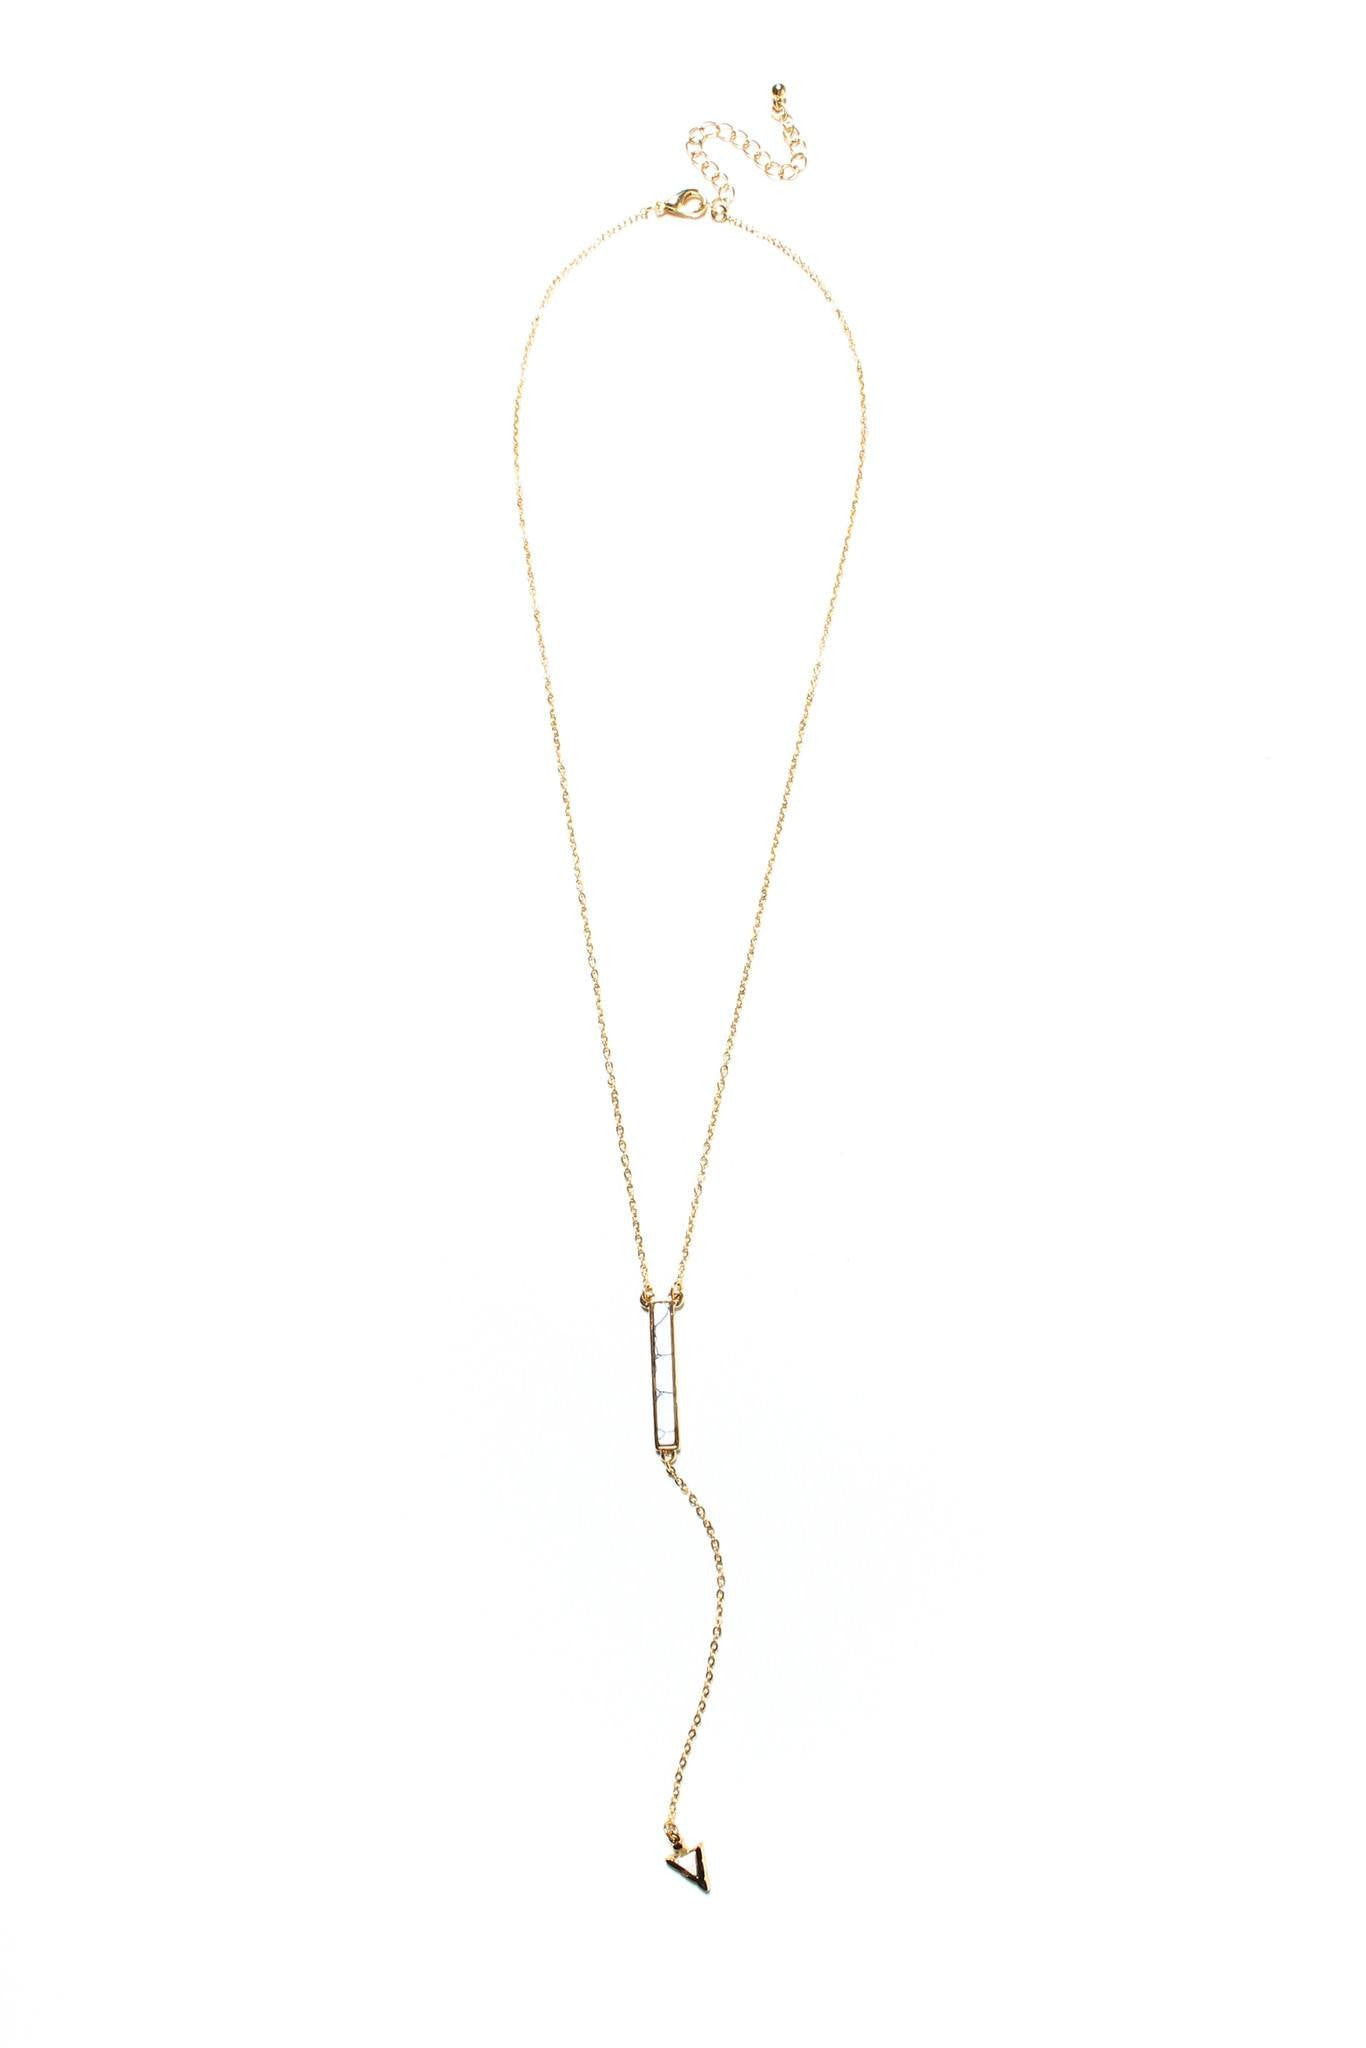 One Way Lariat Necklace - White